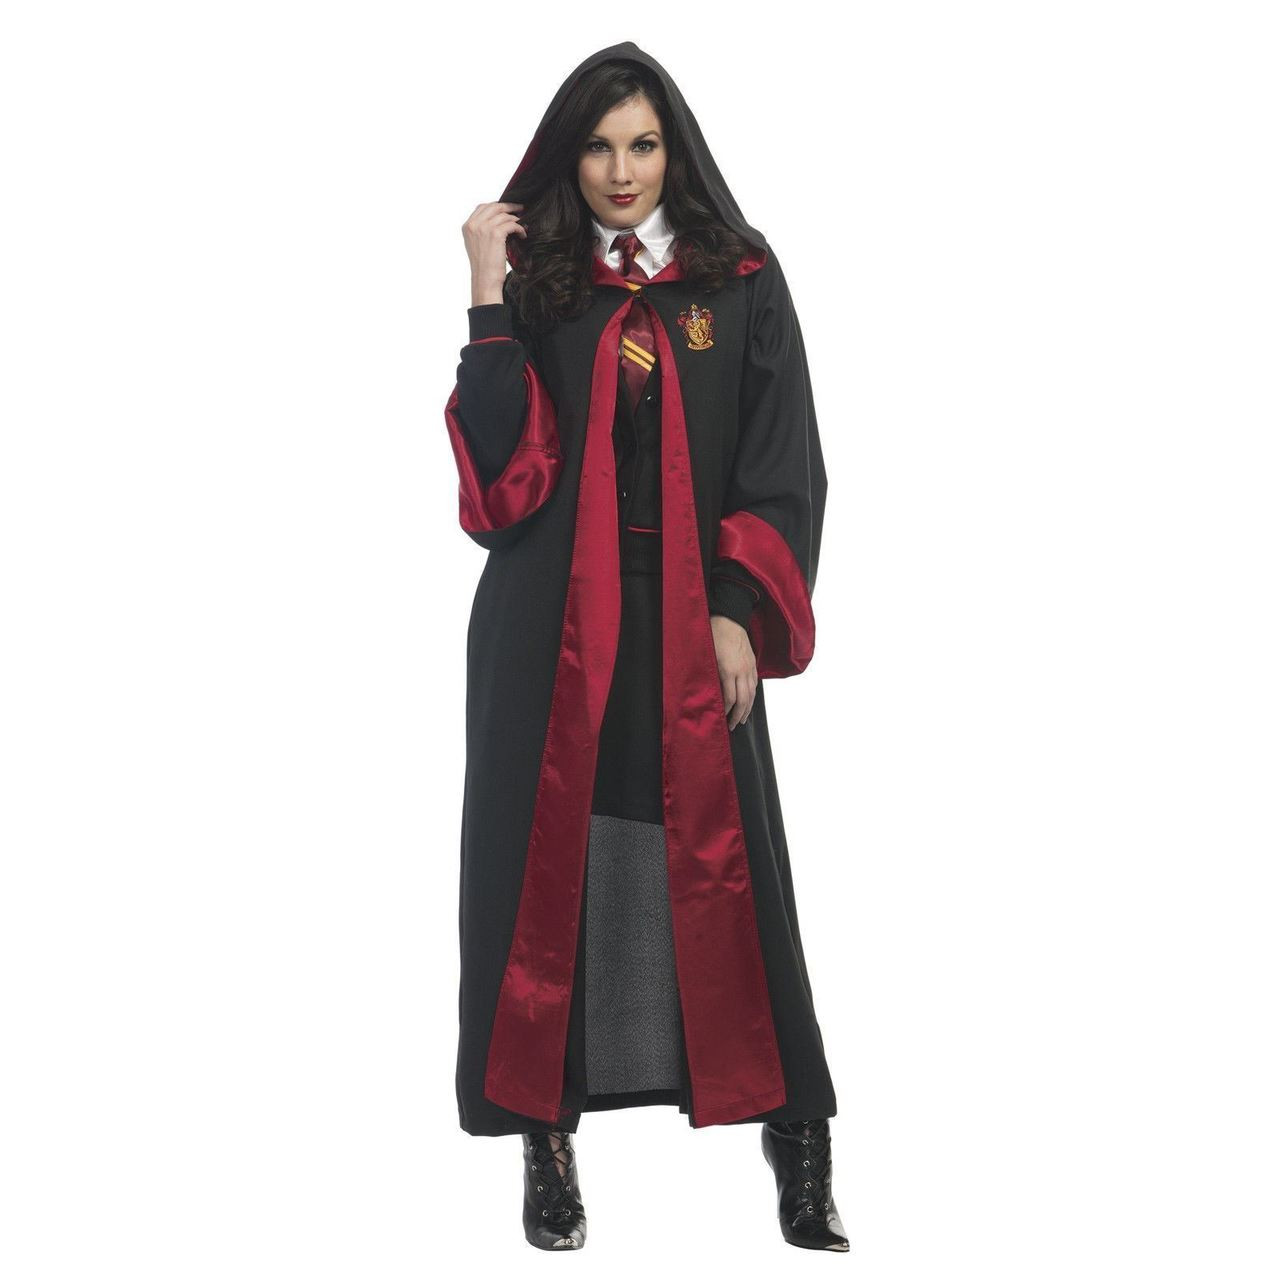 Costume Halloween Hermione.Charades Harry Potter Hermione Granger Adult Womens Halloween Costume 03630